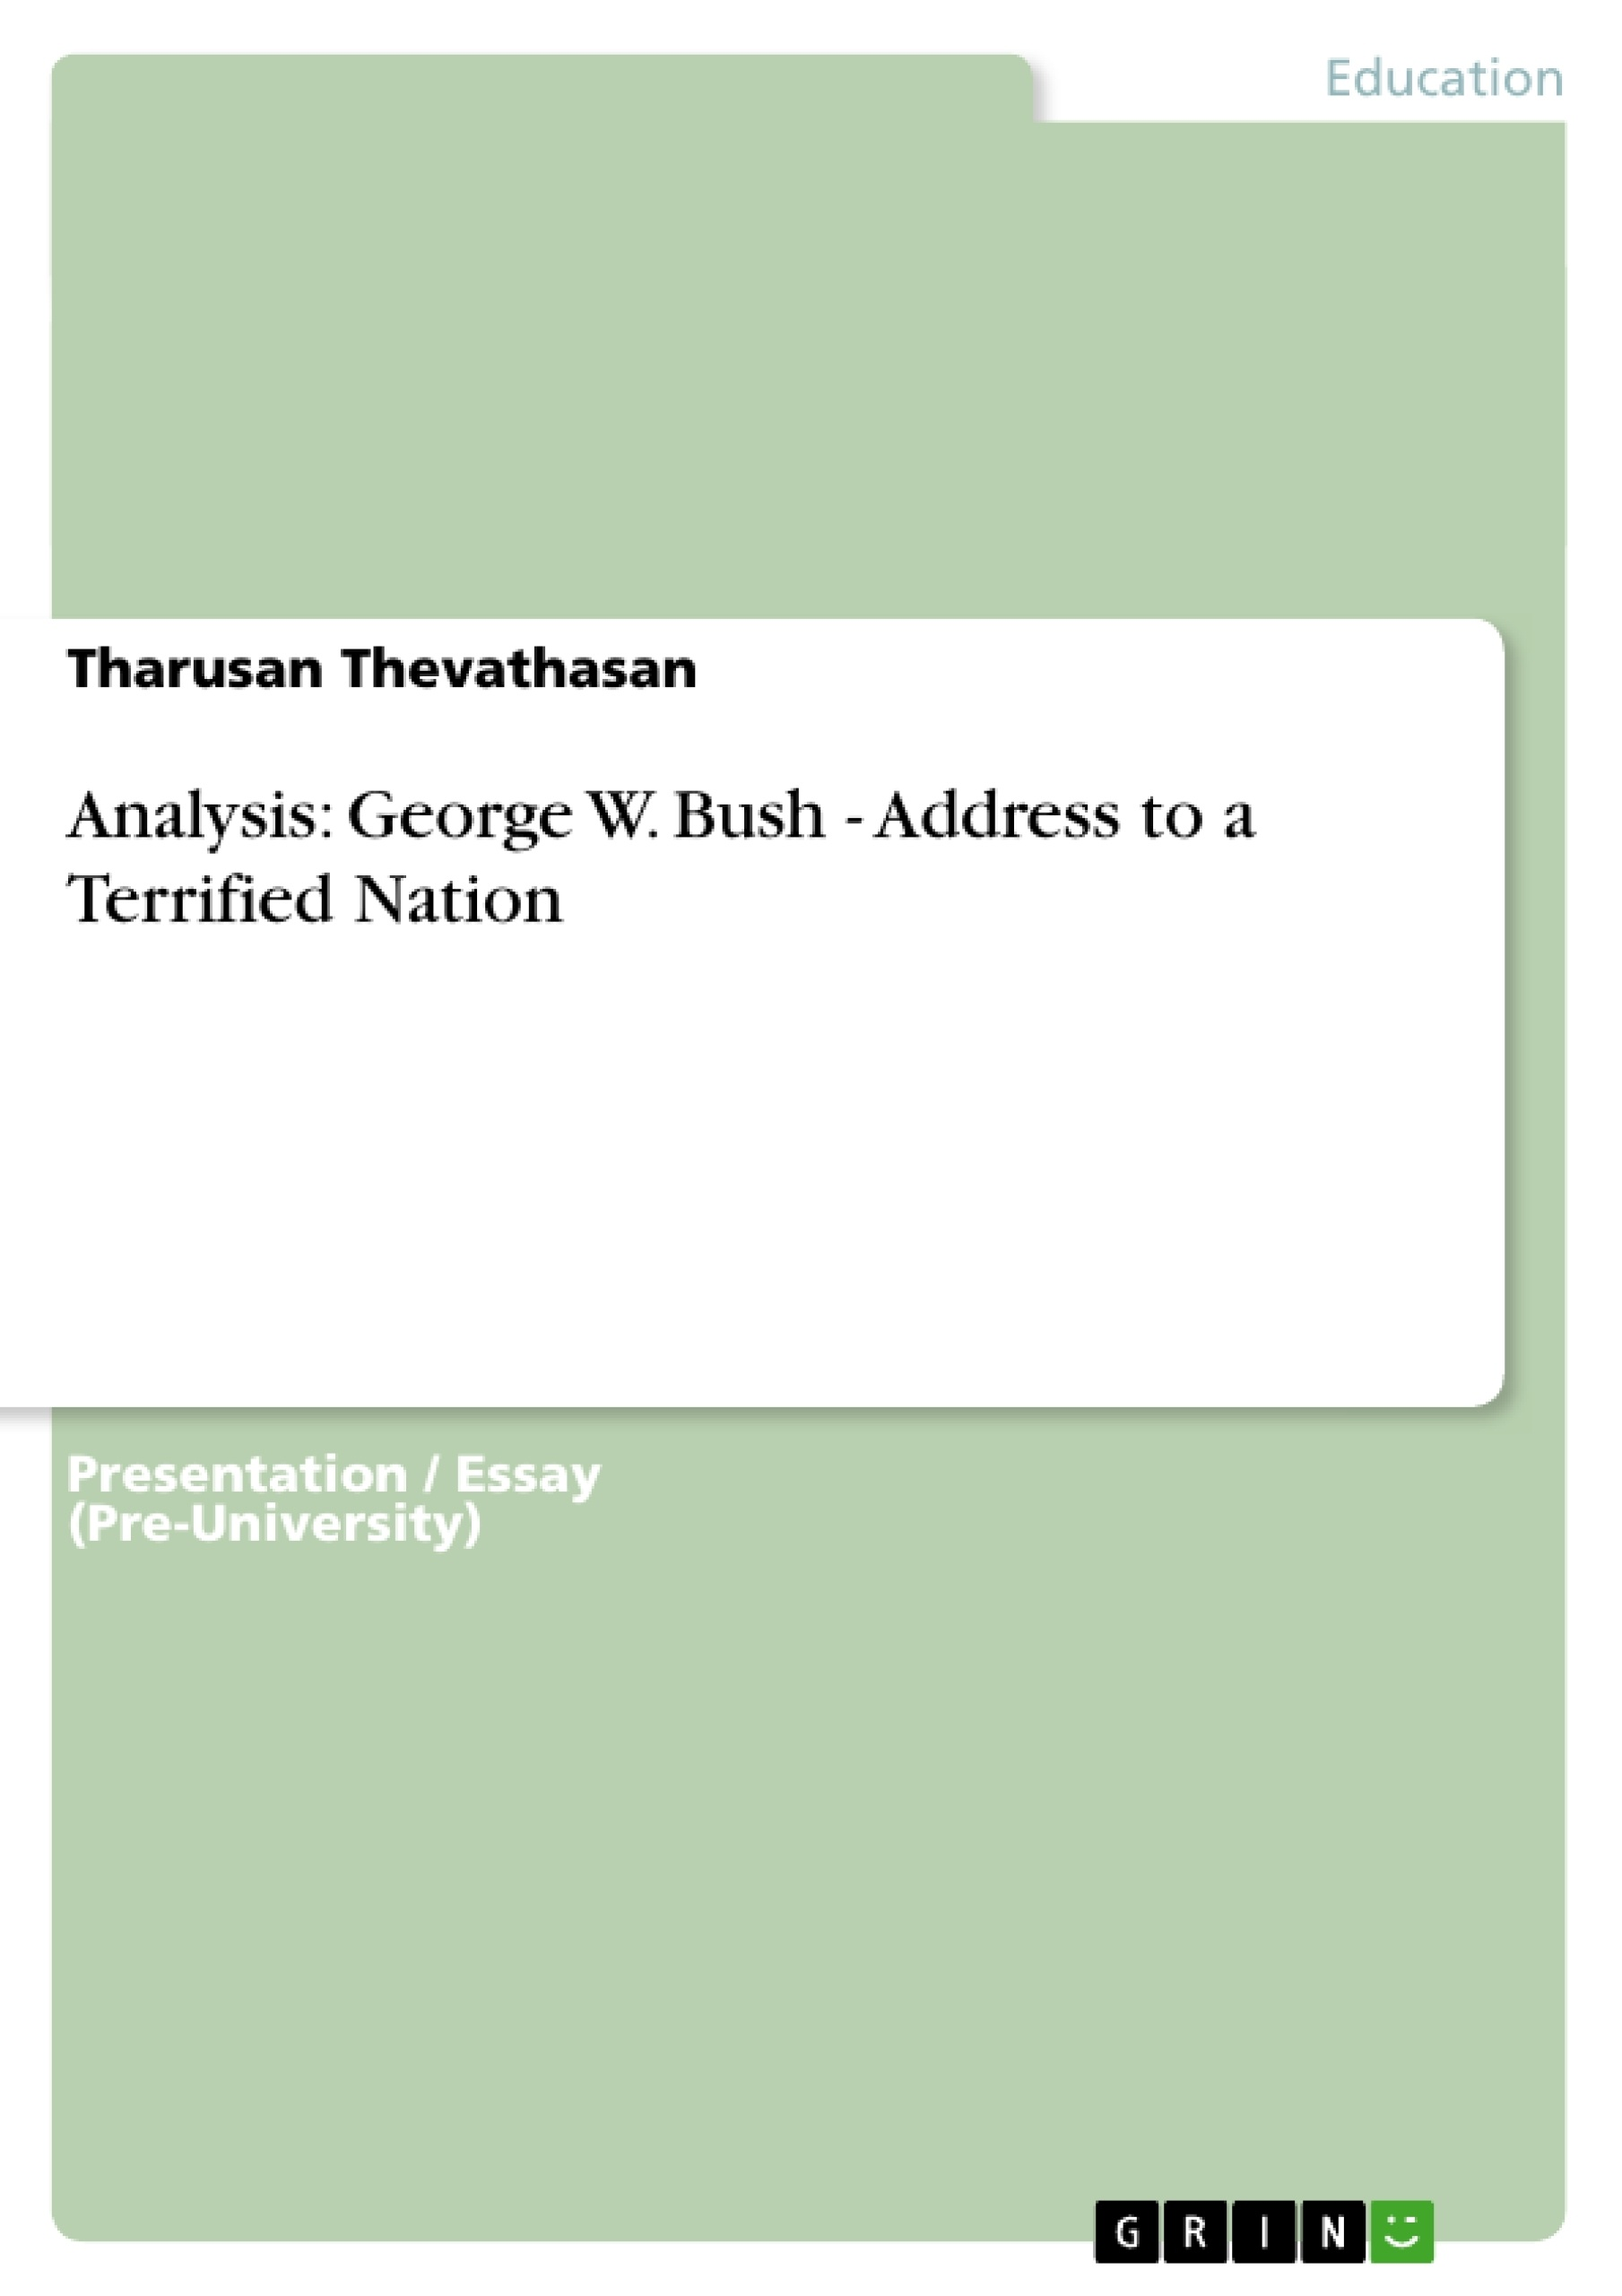 Publish master thesis online